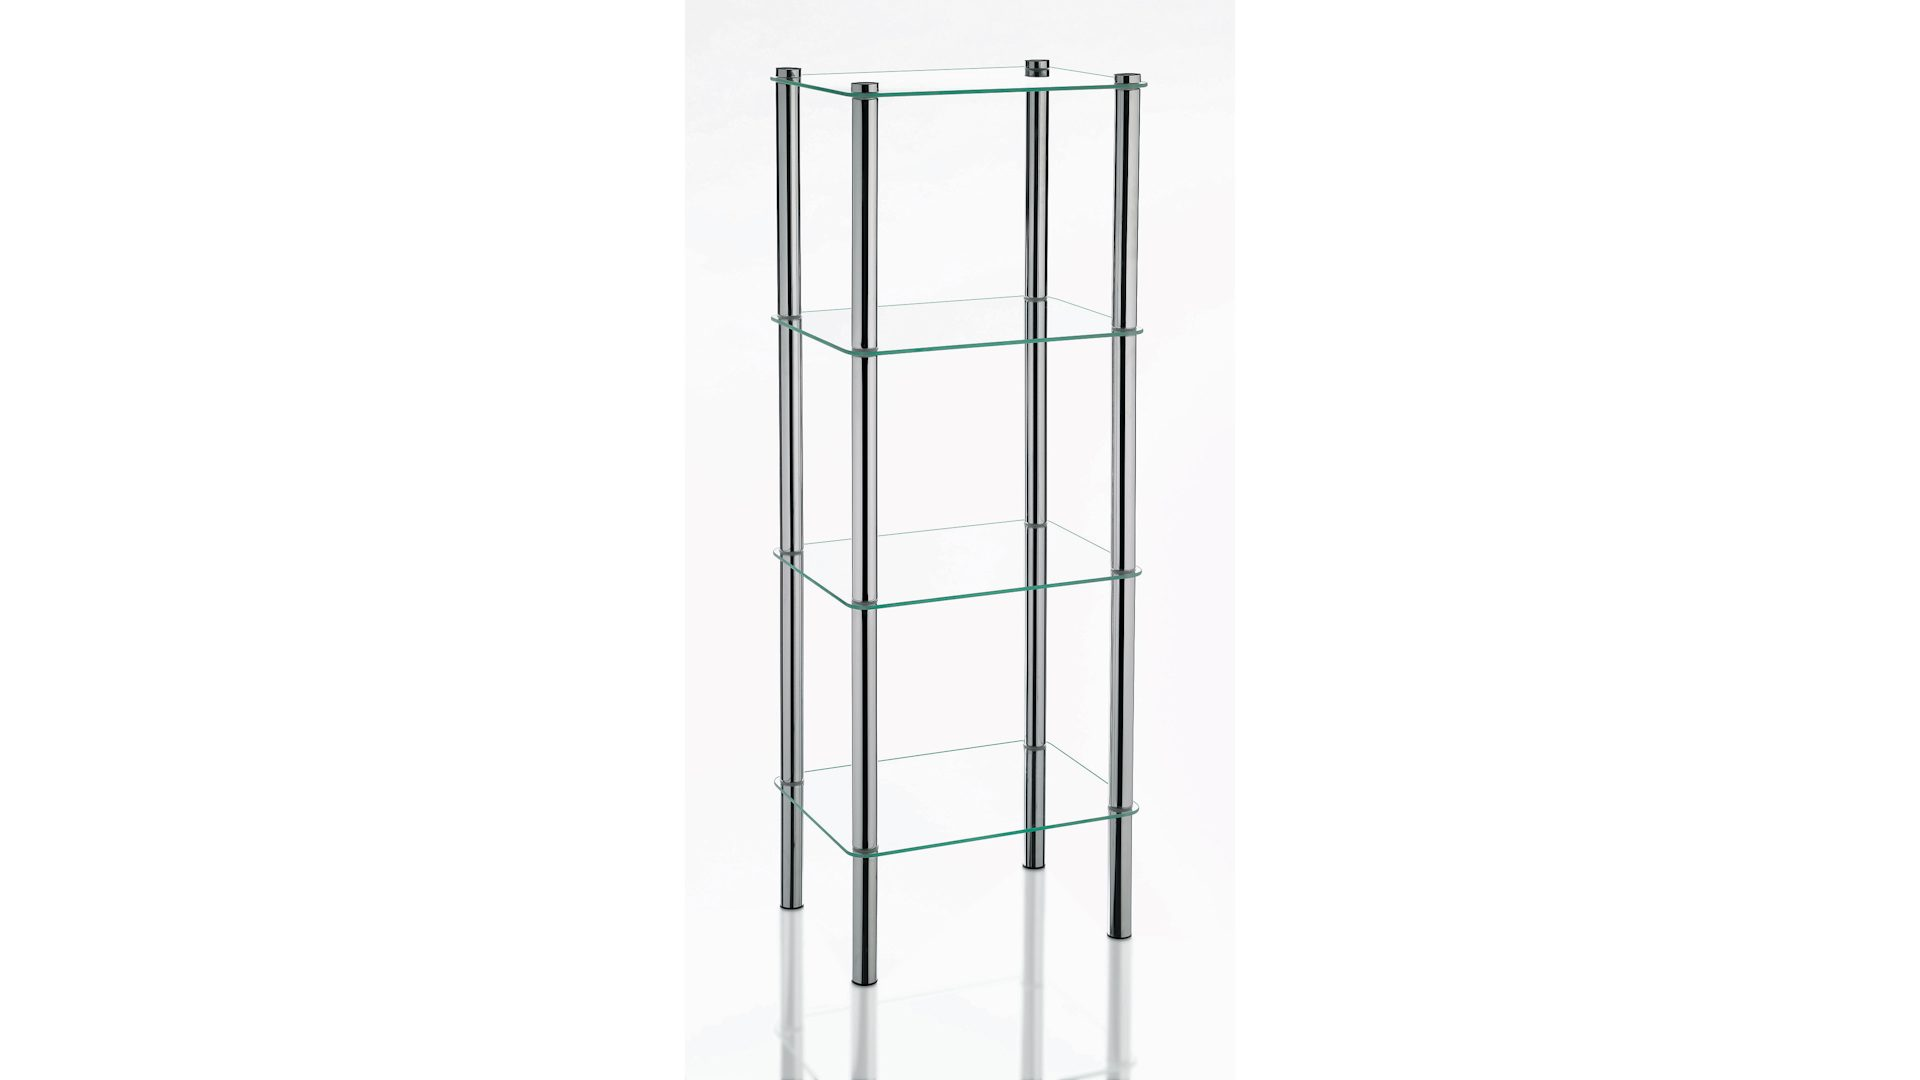 Regal Glasboden Badregale Glas